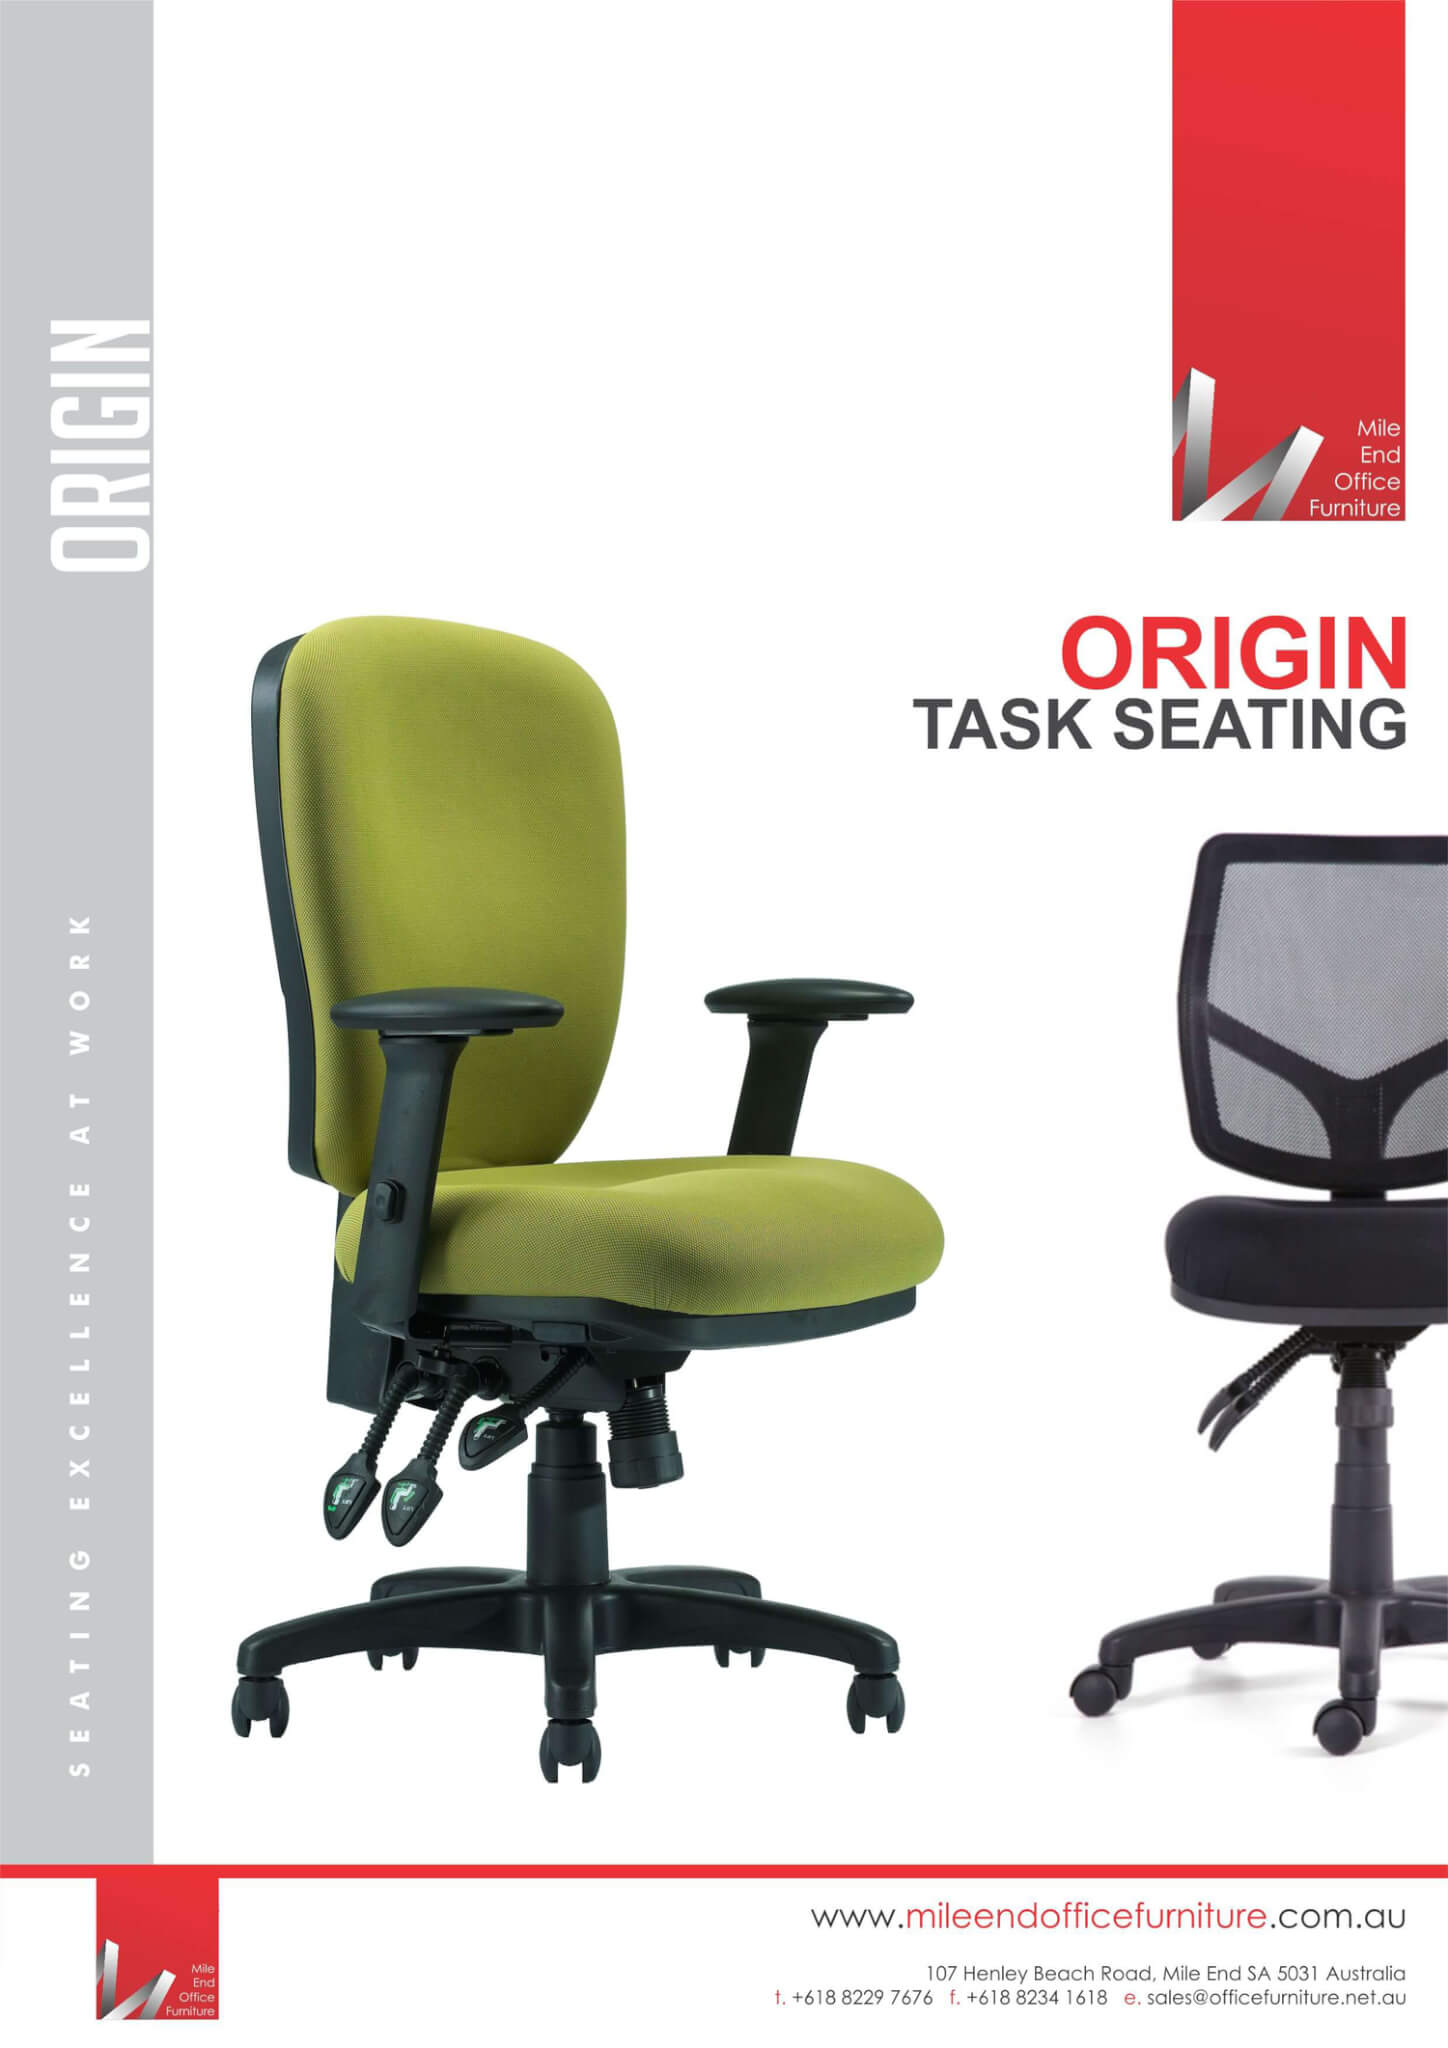 Second Hand Office Furniture Sydney Home Corporate Office Furniture Mile End Office Furniture